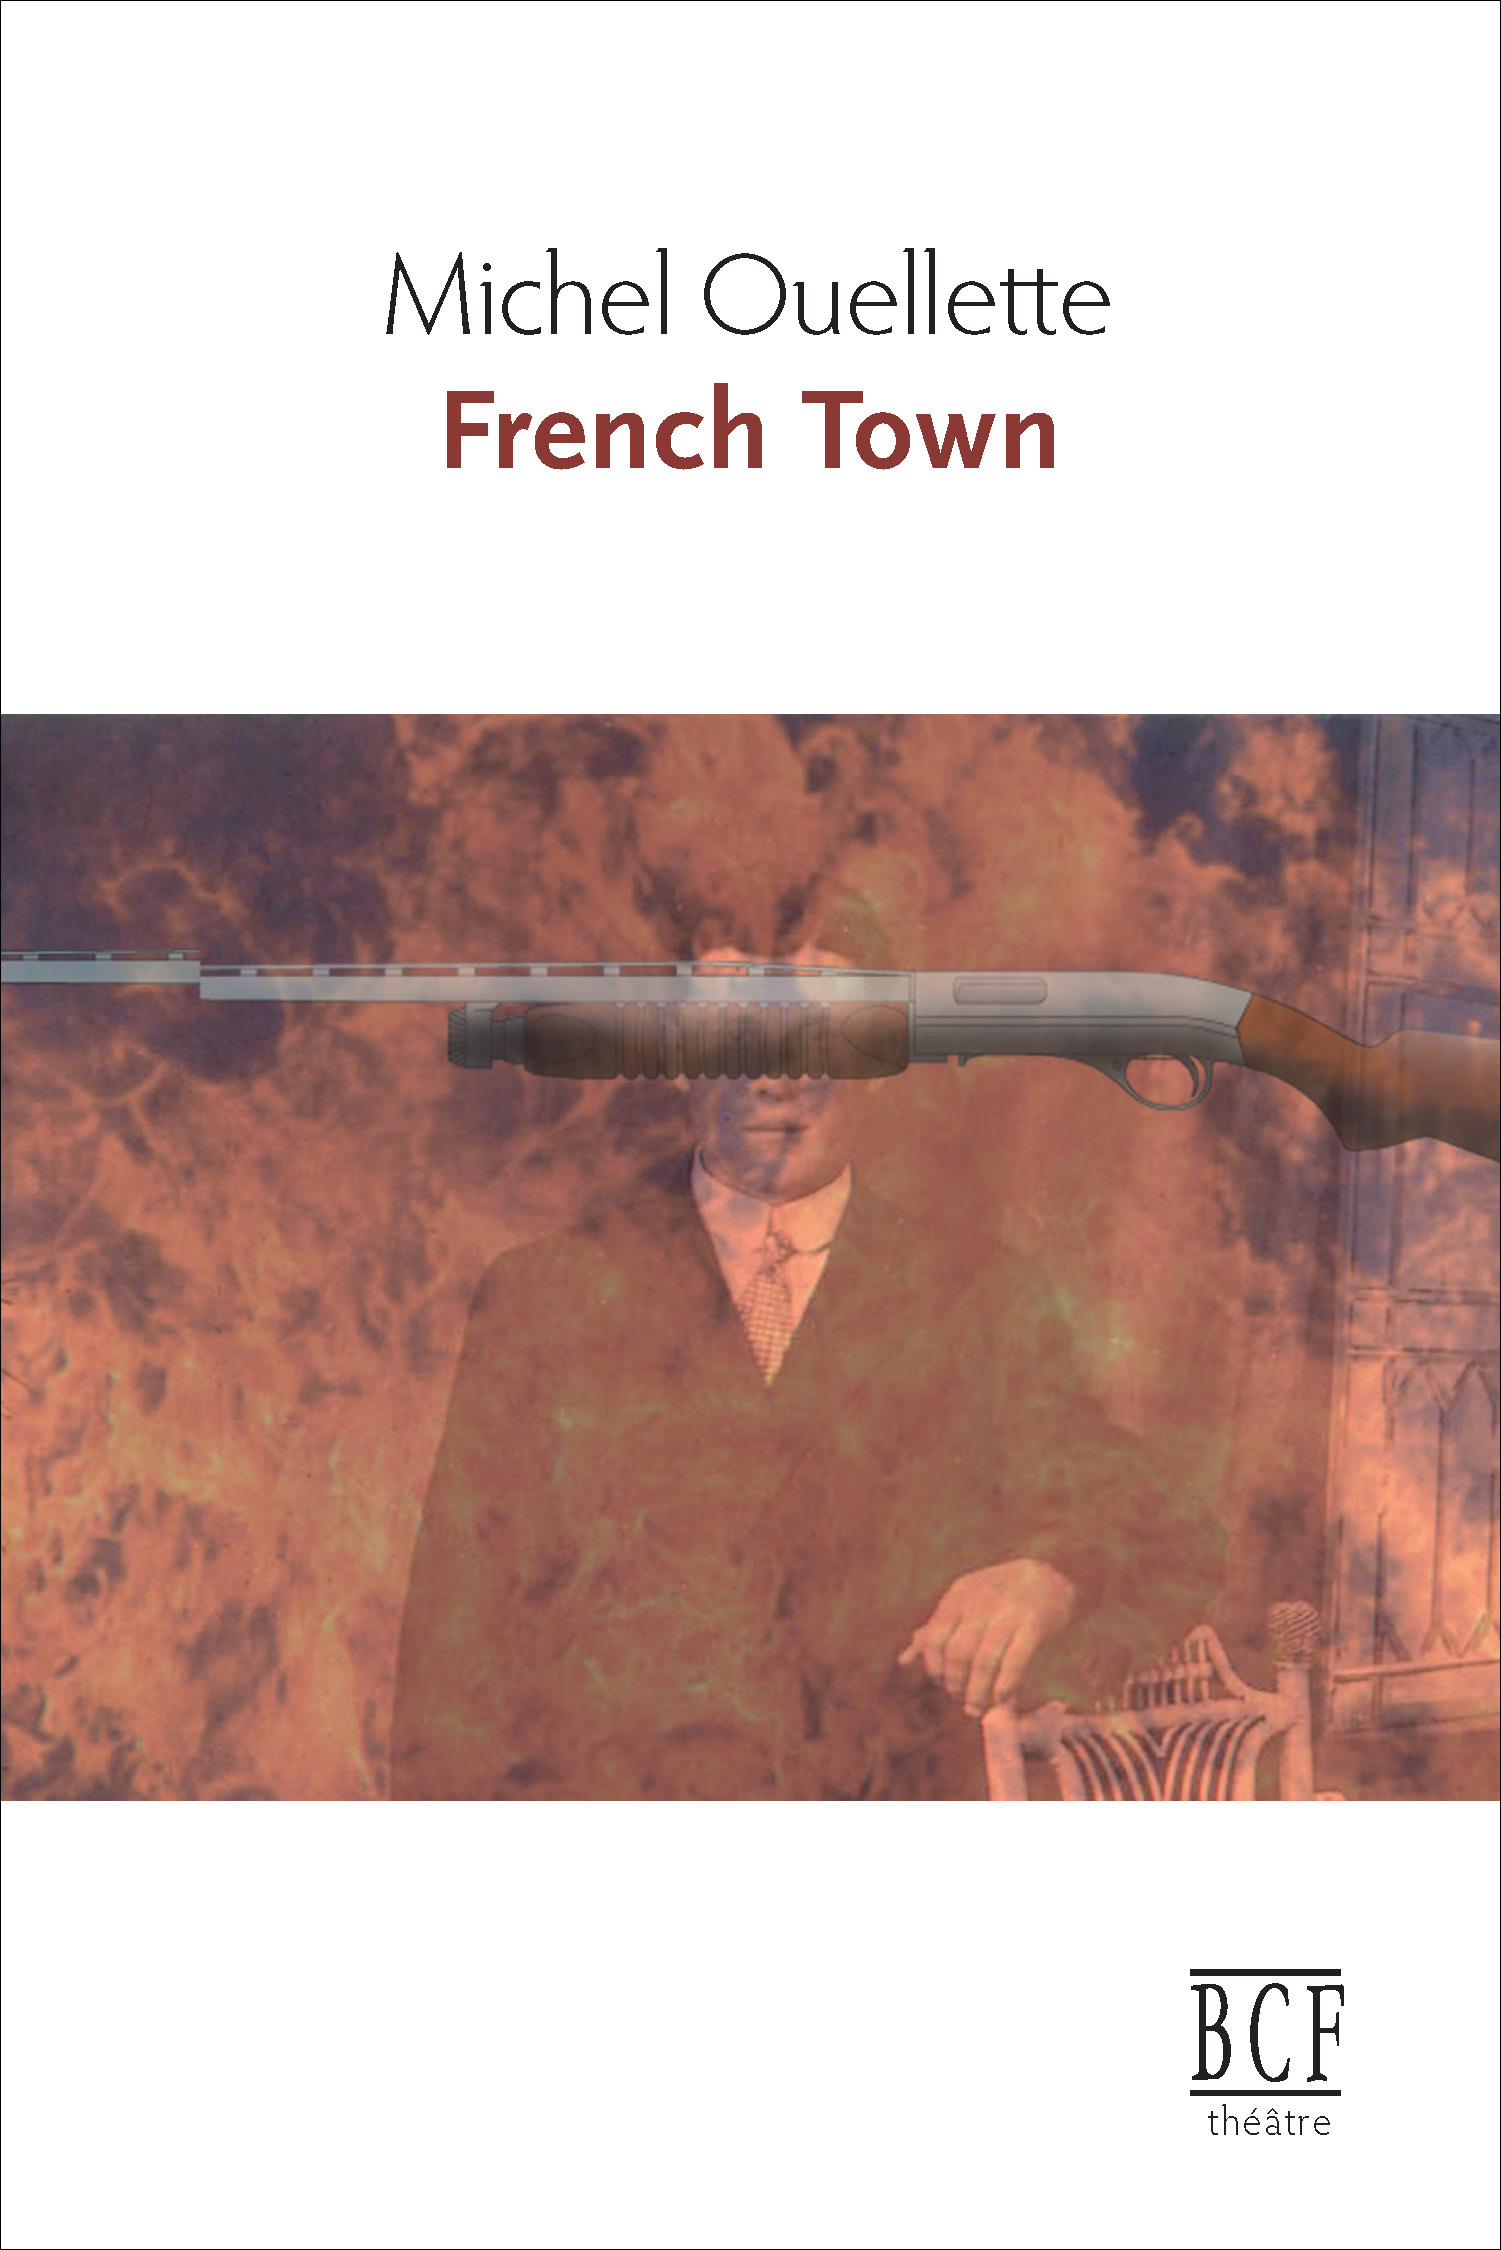 Couverture : French Town Michel Ouellette